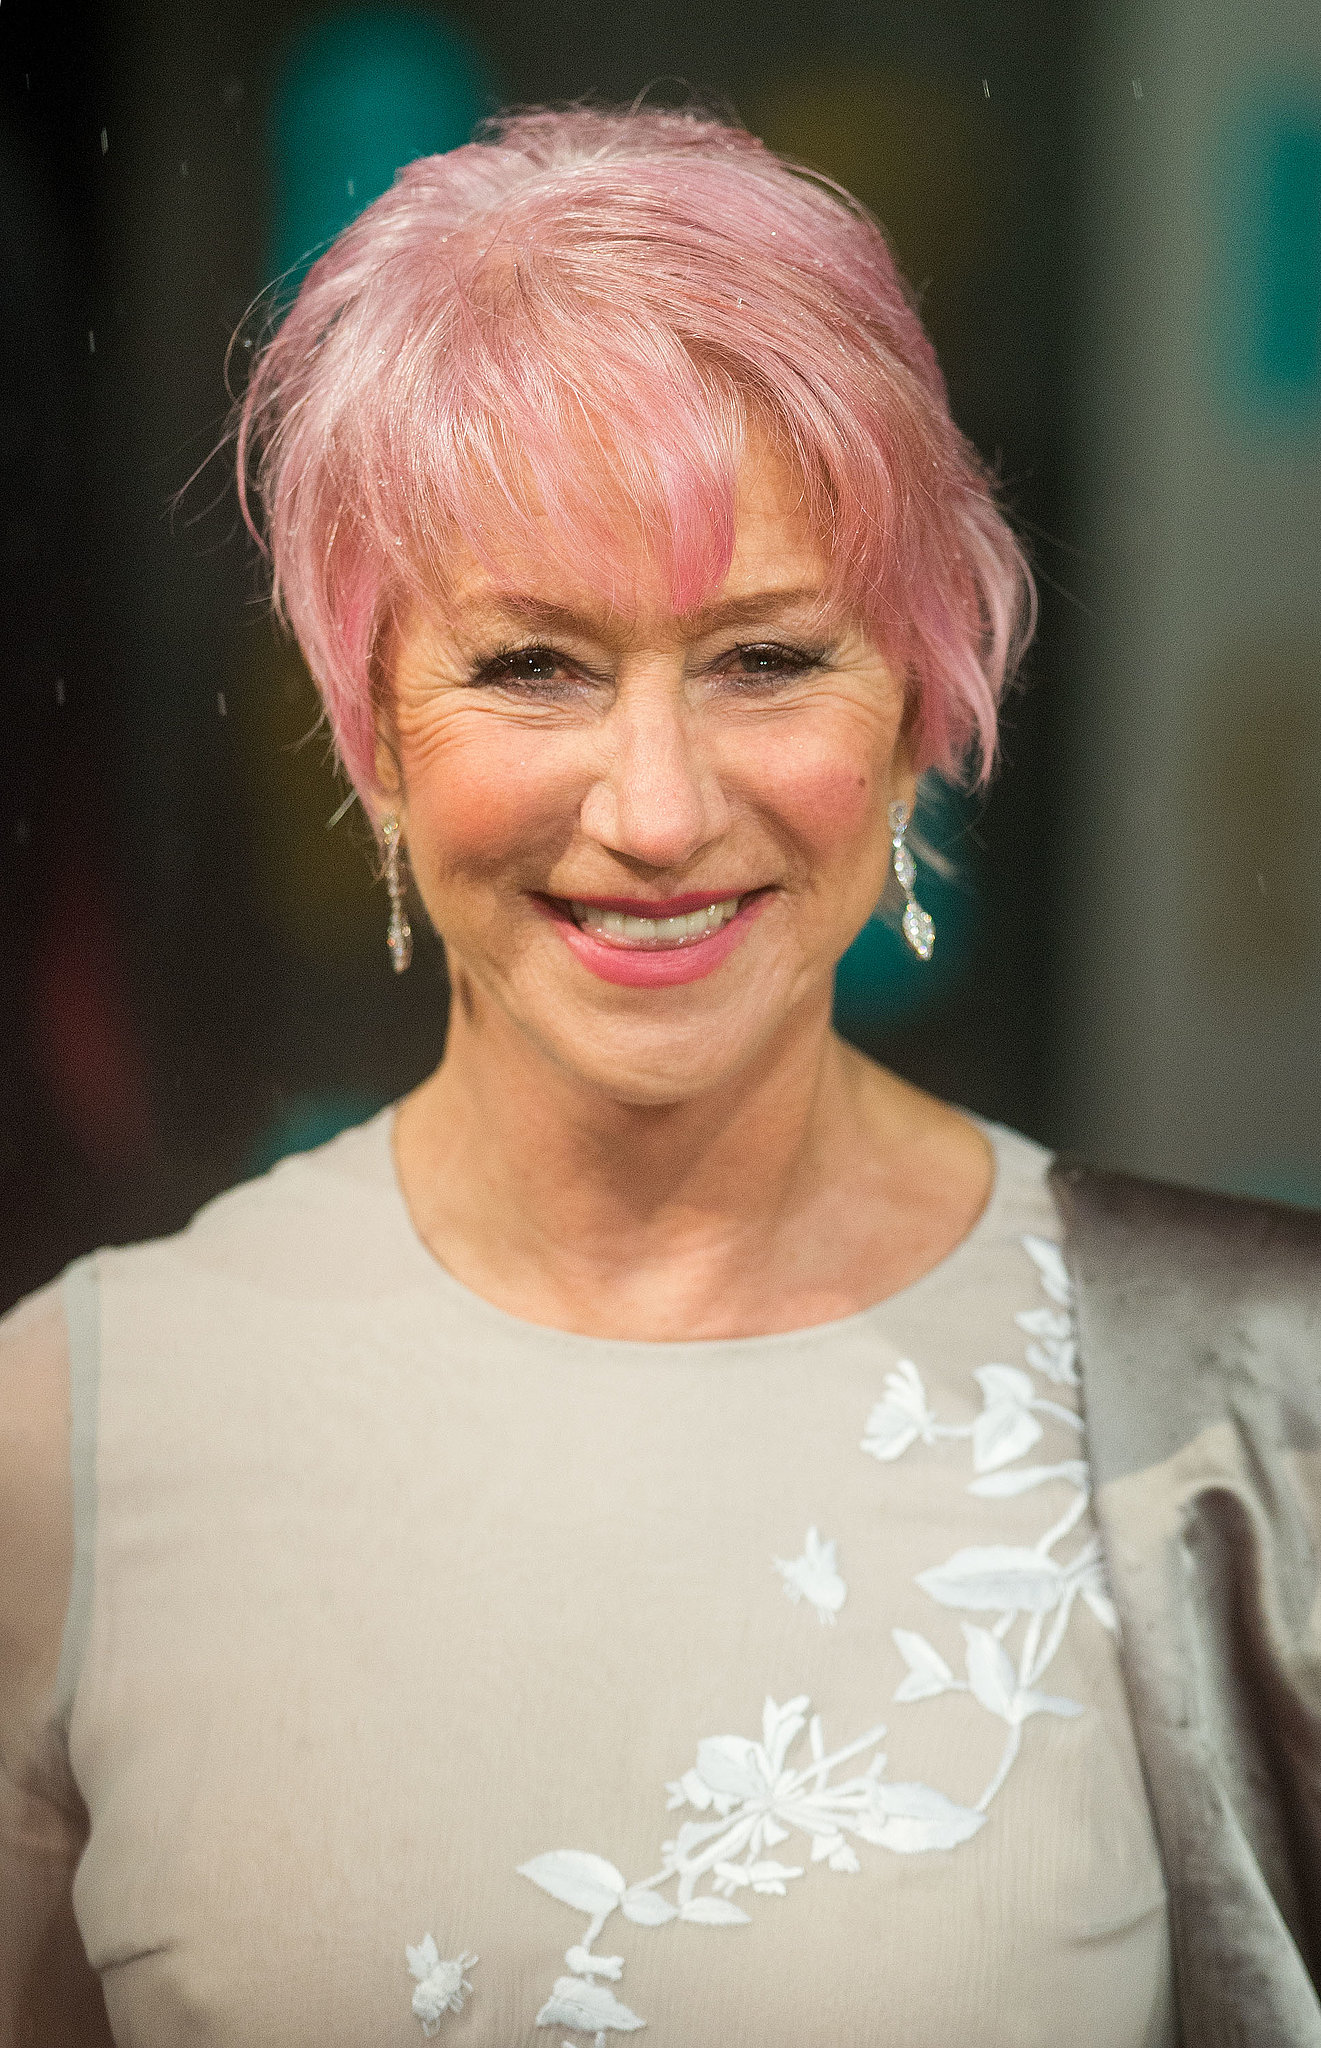 Helen Mirren debuted her new pink hairdo at the BAFTA Awards.